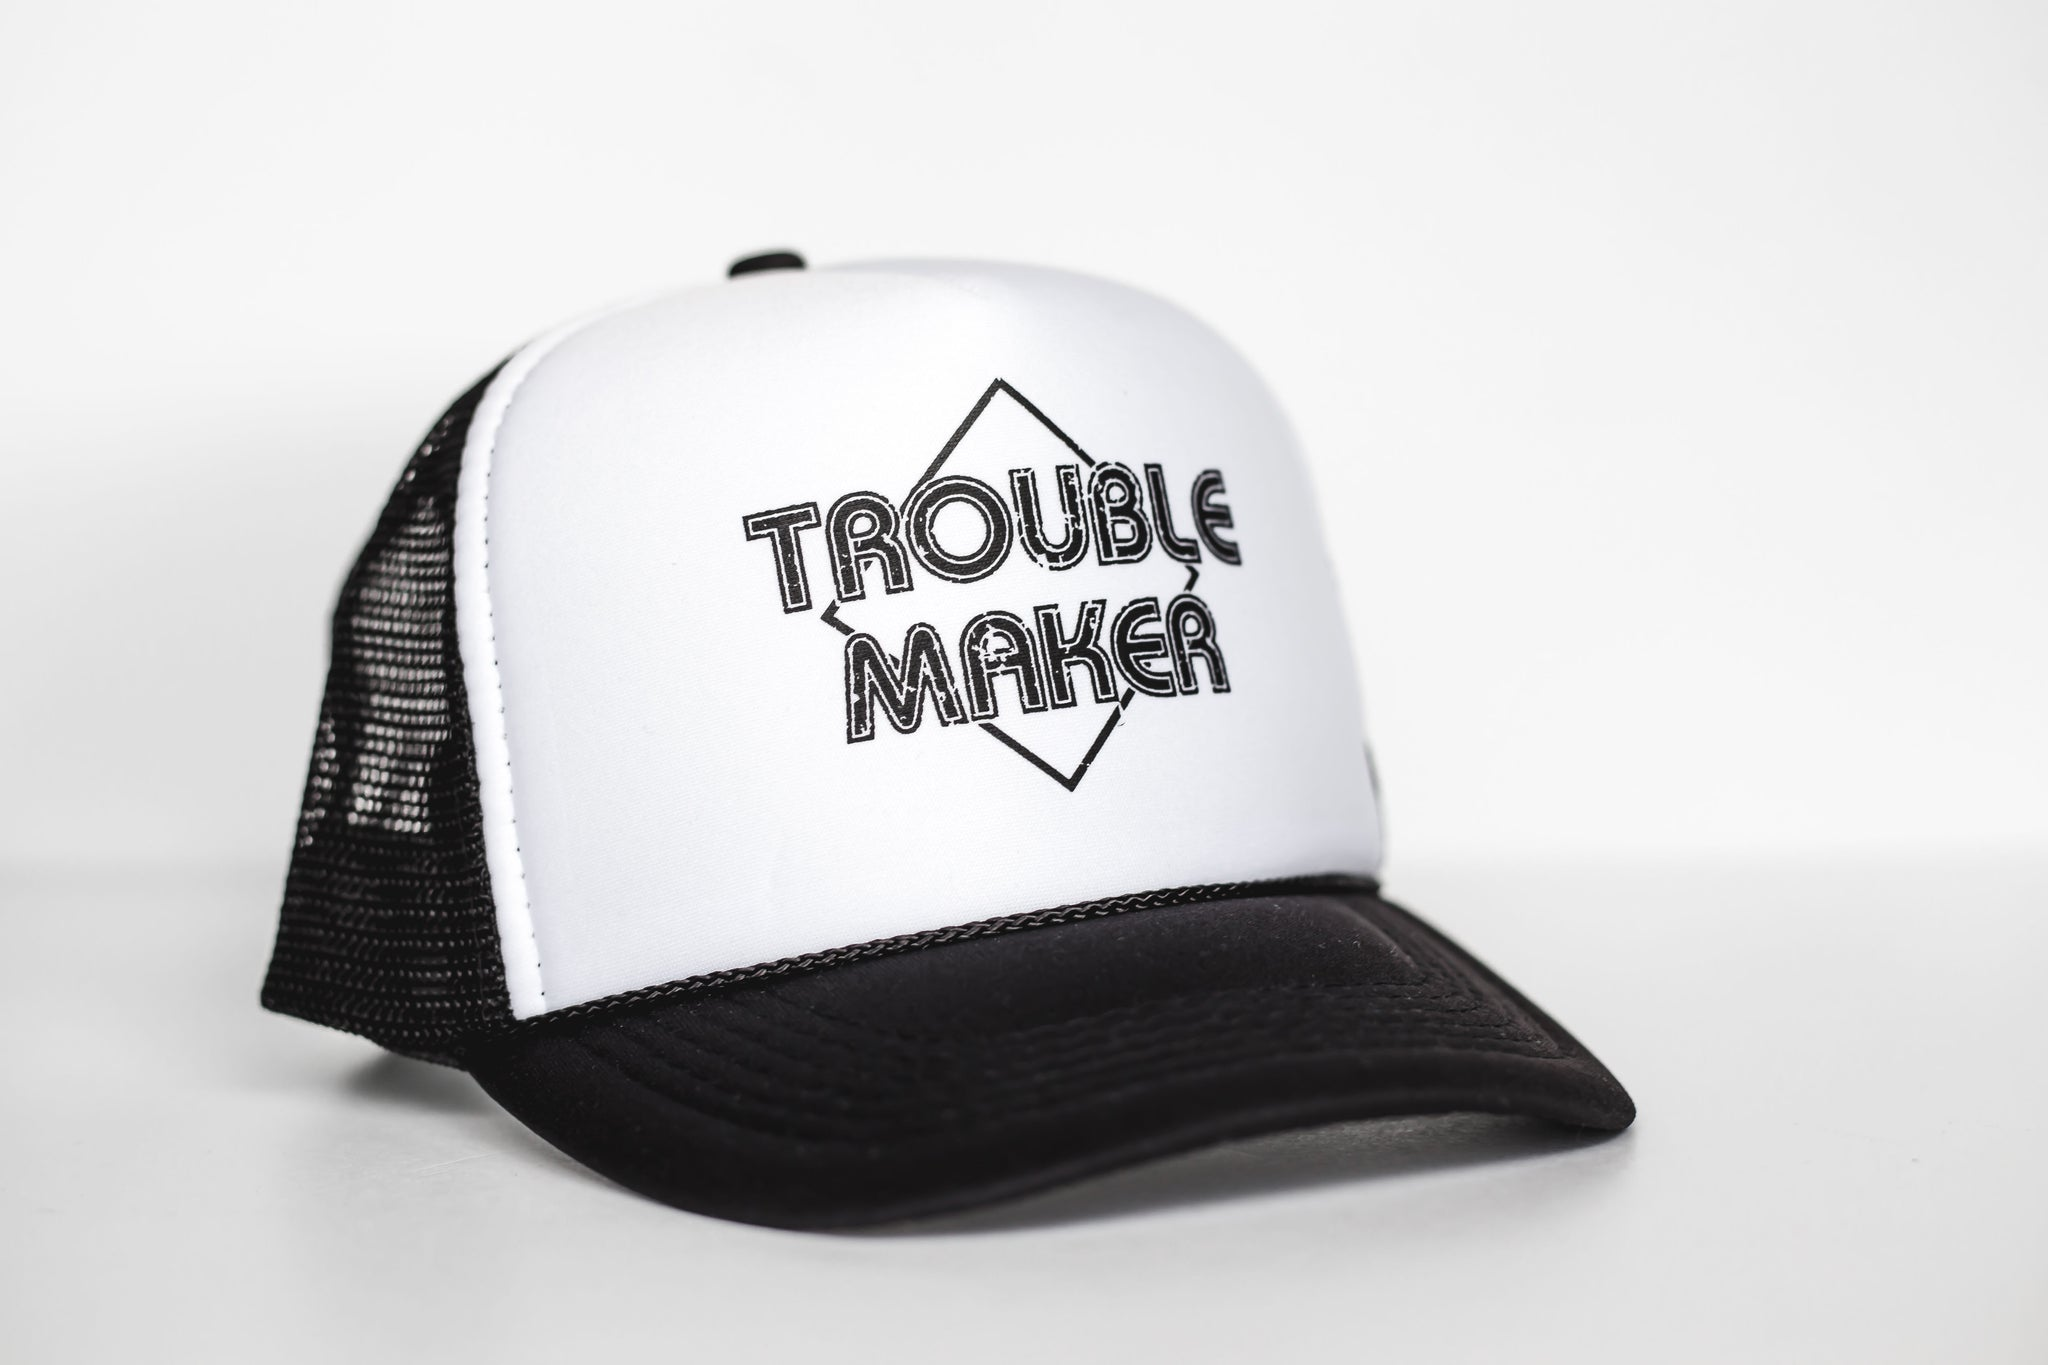 Trouble Maker - Snapback Trucker Hat